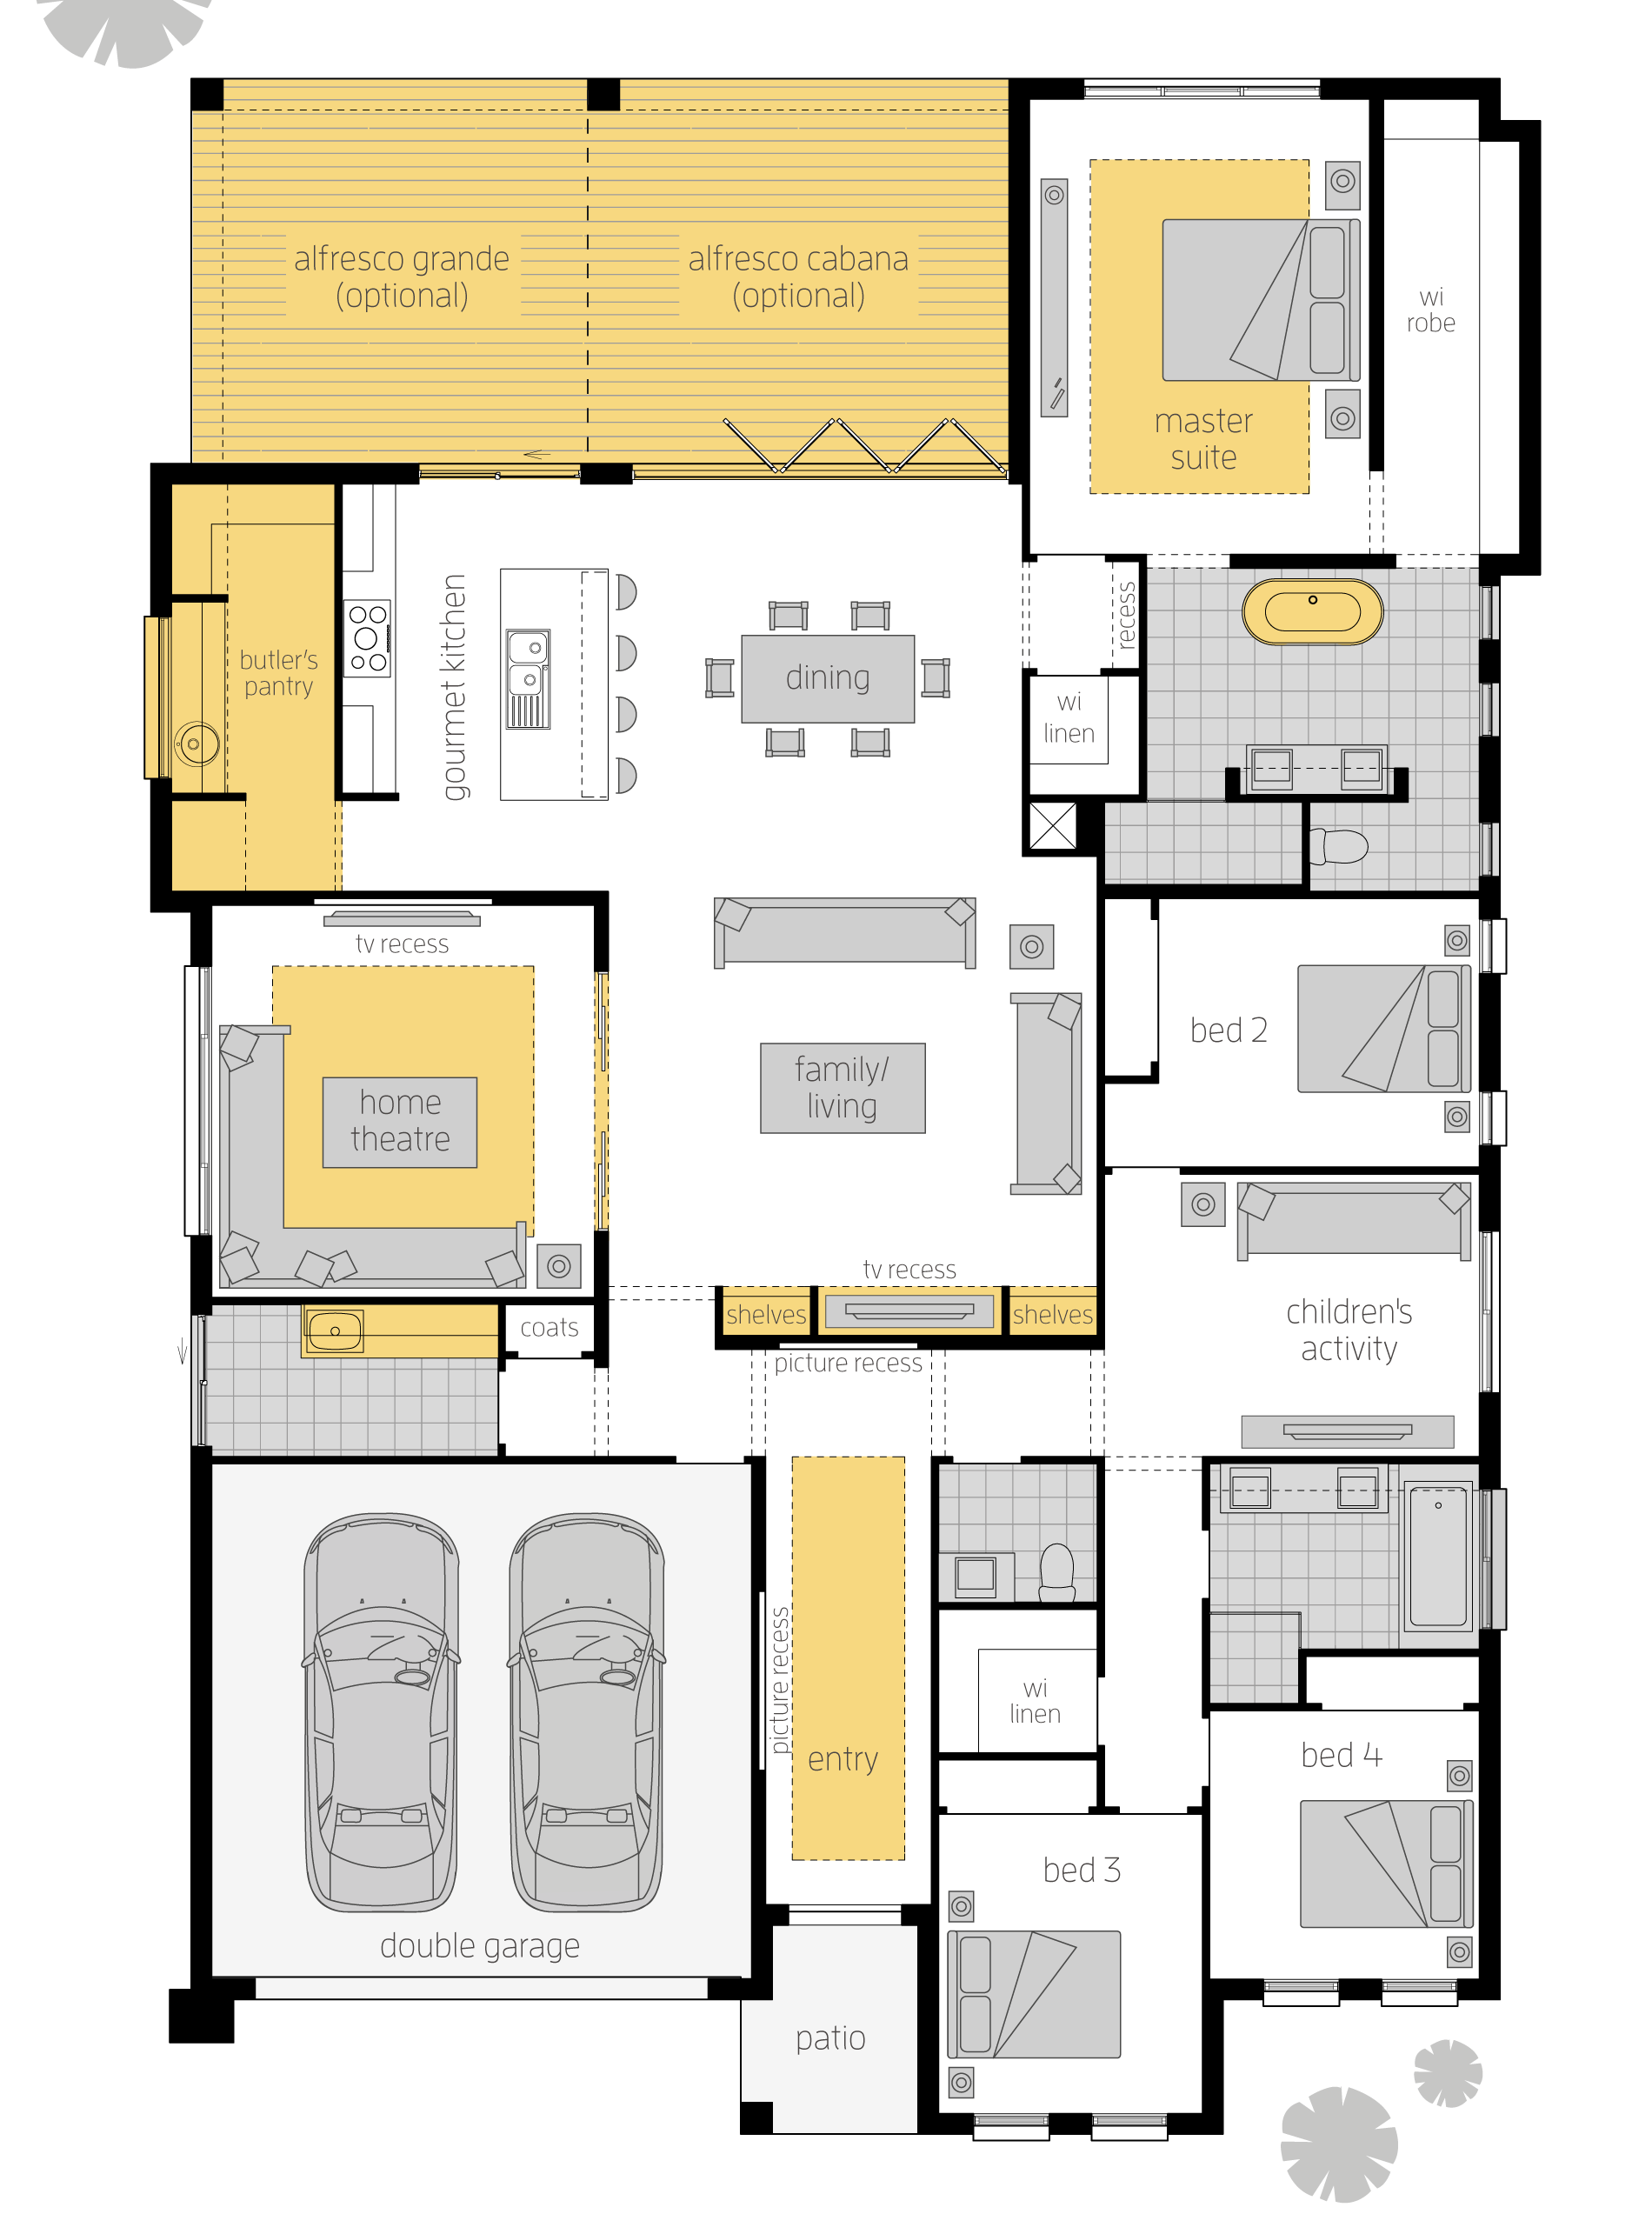 Aristocrat Executive Upgrades Floor Plan Make The Most Of Indoor Outdoor Living With The Aristocrat This Uniqu Dream House Plans House Plans New House Plans